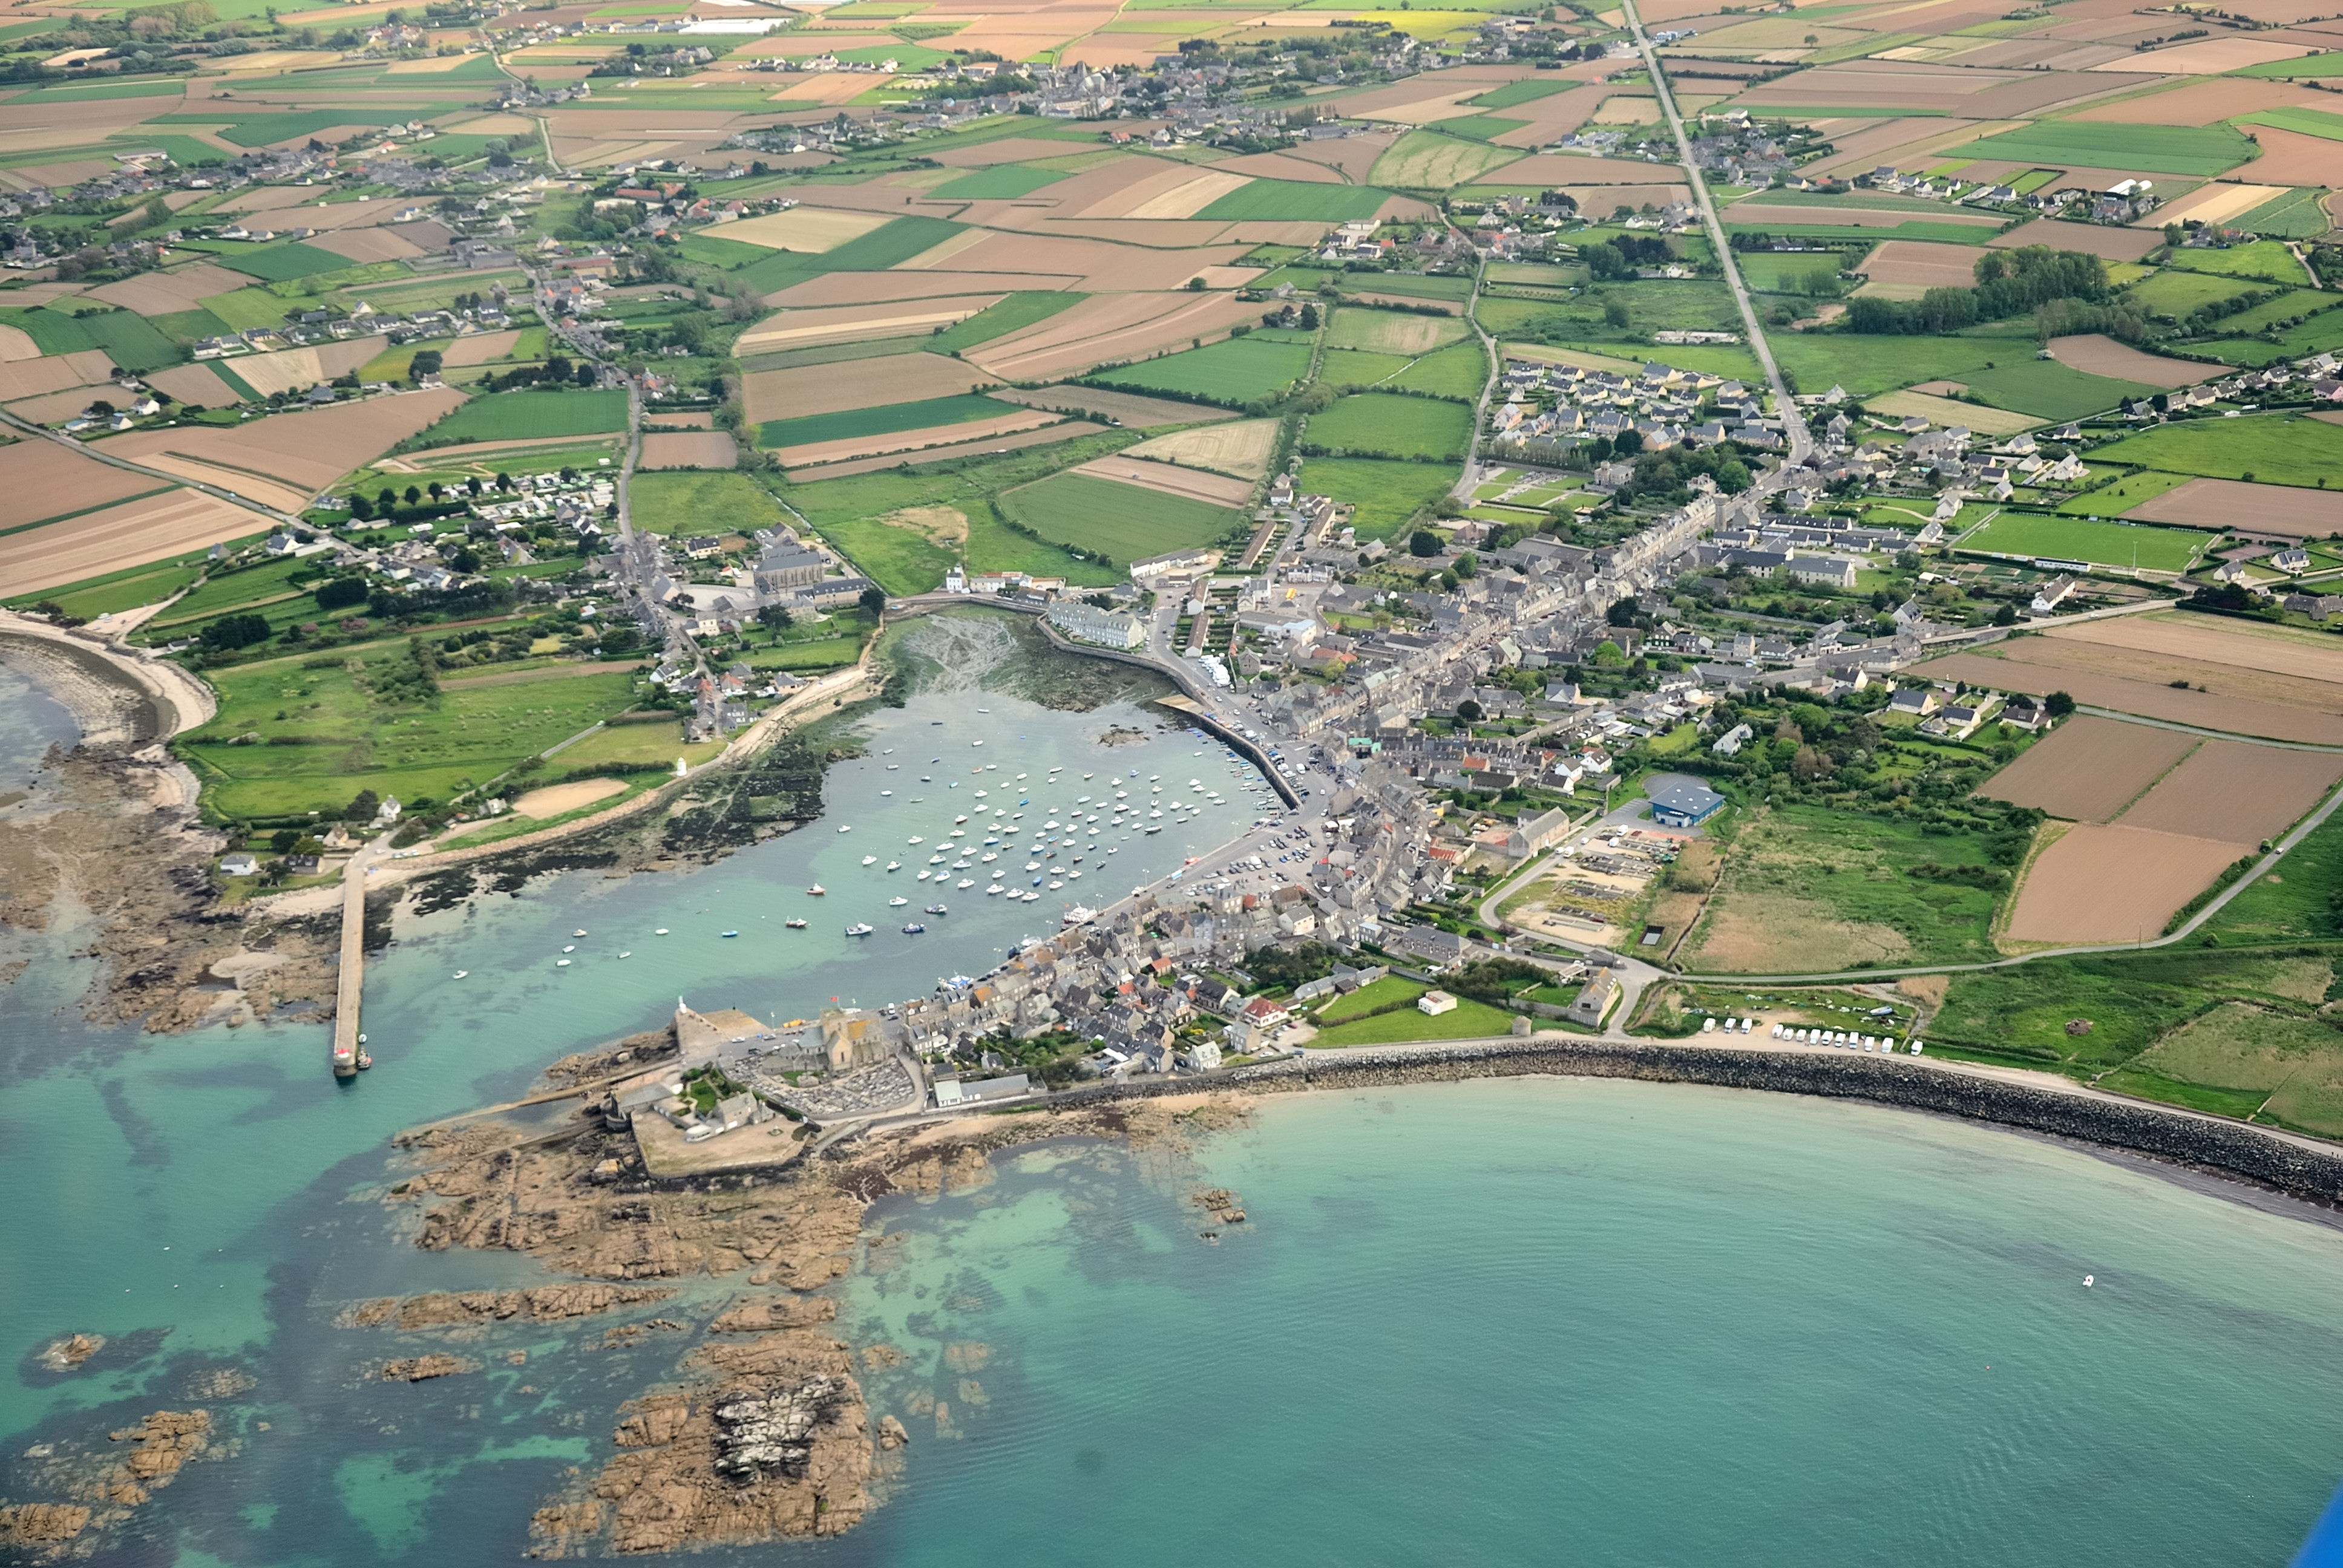 875-barfleur-plus-beaux-villages-de-france-manche.jpg